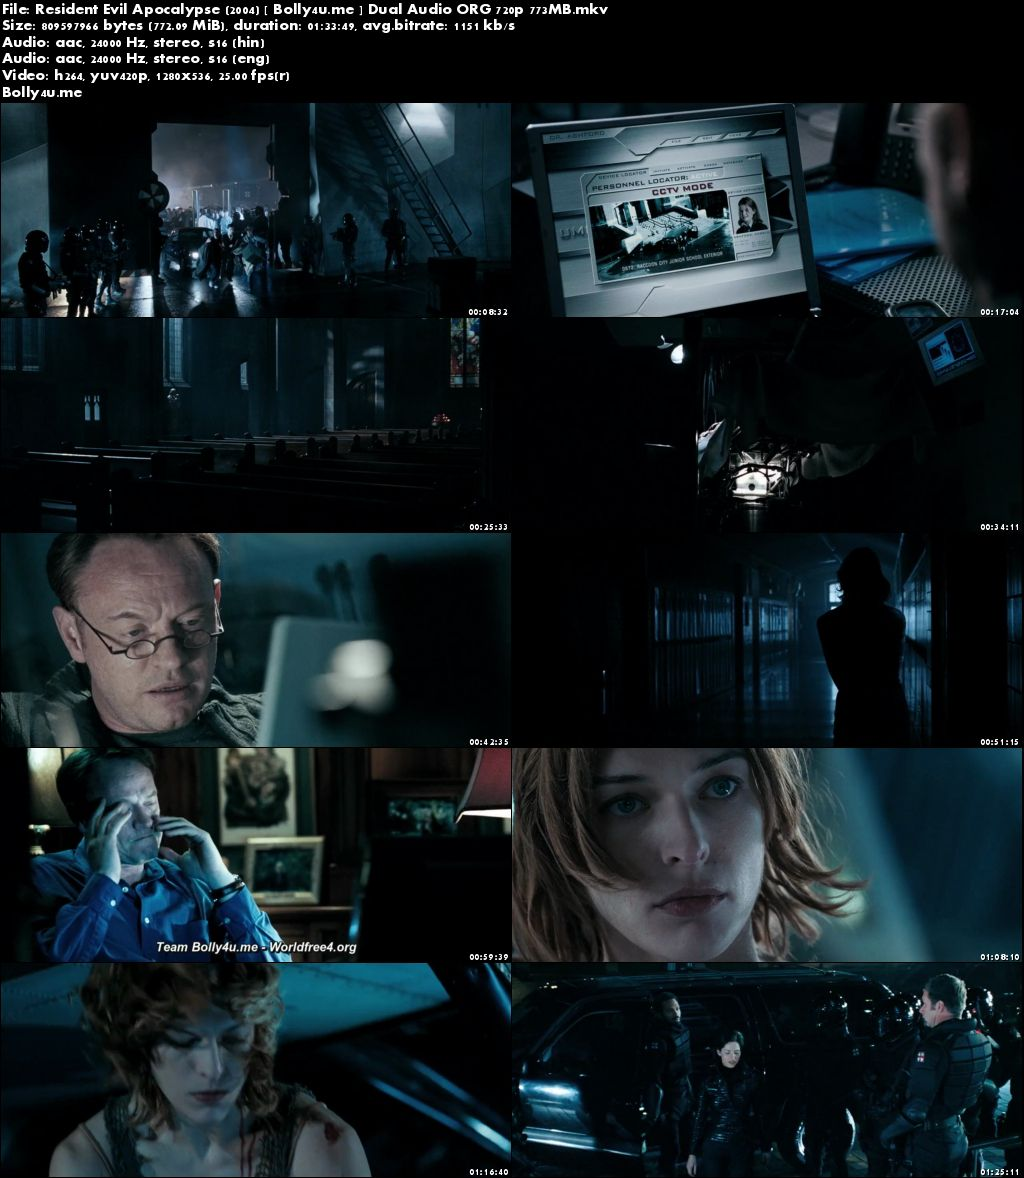 Resident Evil Apocalypse 2004 BRRip 300MB Hindi Dual Audio ORG 480p Download